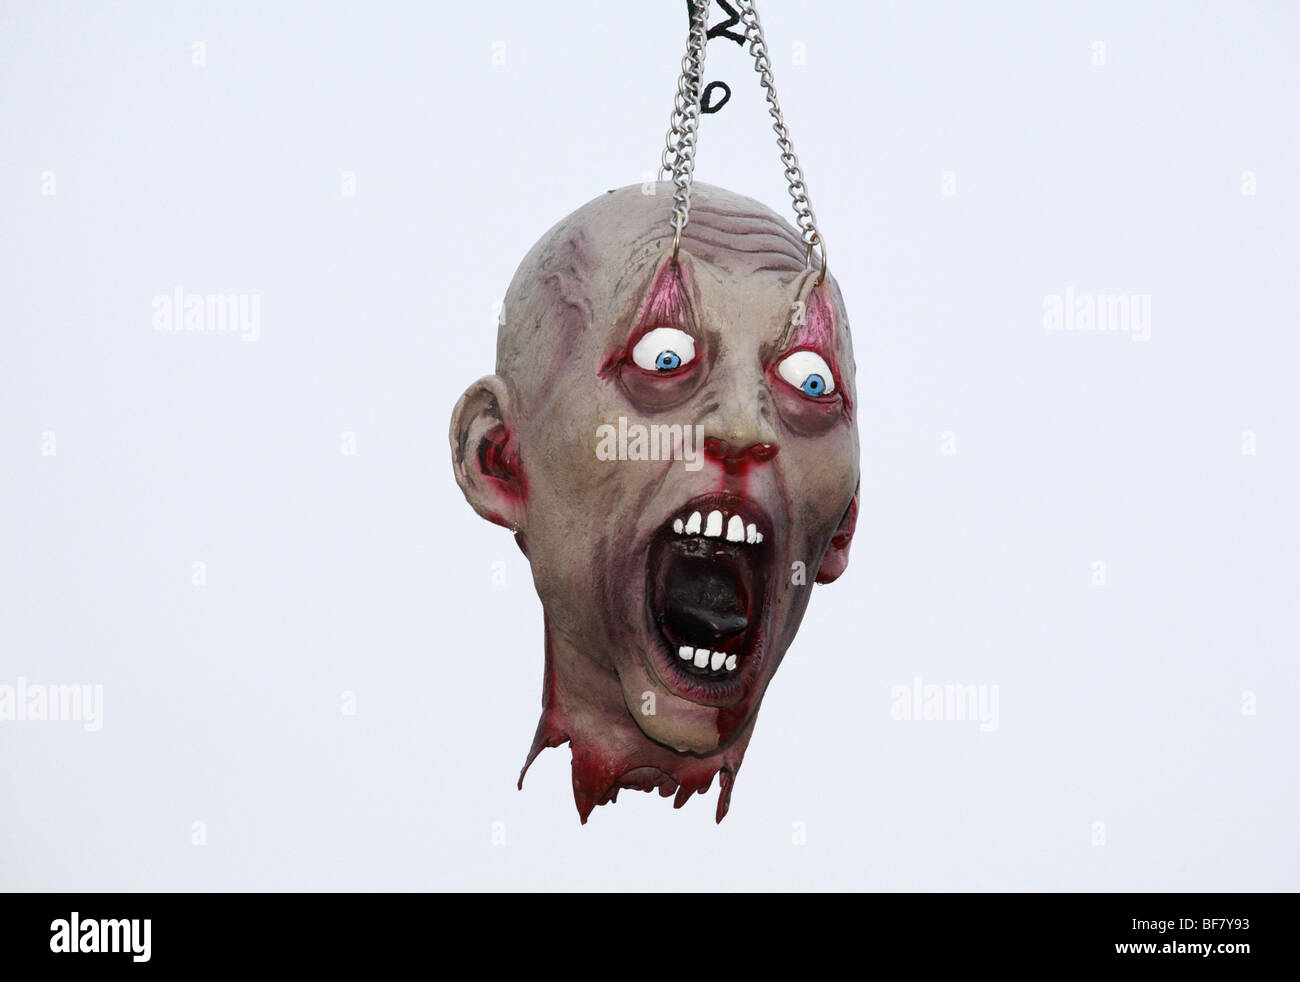 A horror toy dummy head suspended as part of an Halloween display. - Stock Image